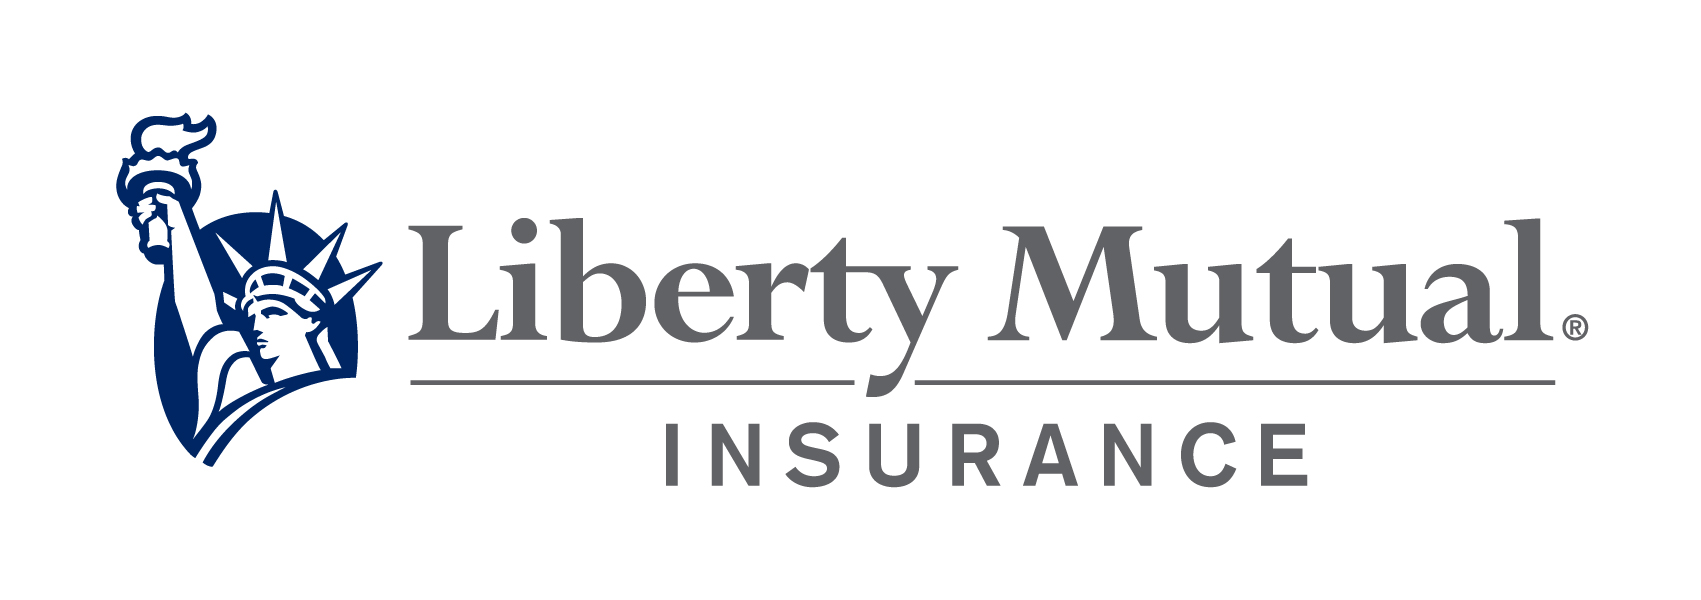 Best Rated Health Insurance Companies >> Liberty Mutual - Jessica Liu Insurance Services